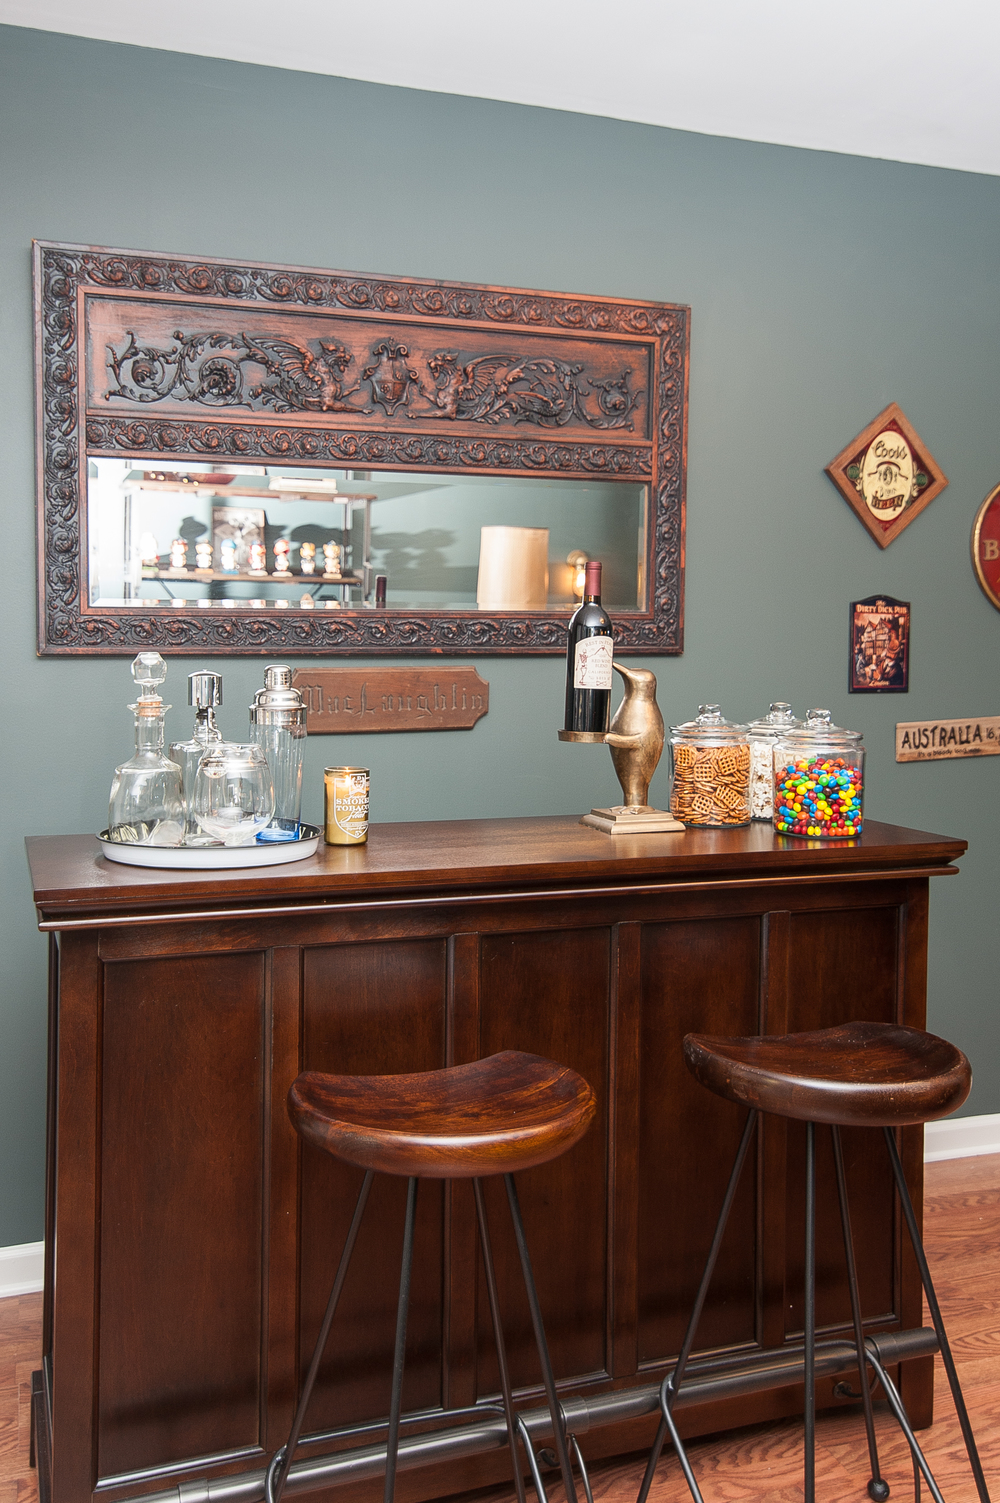 Artful Interiors - Bachelor Pad - Bar